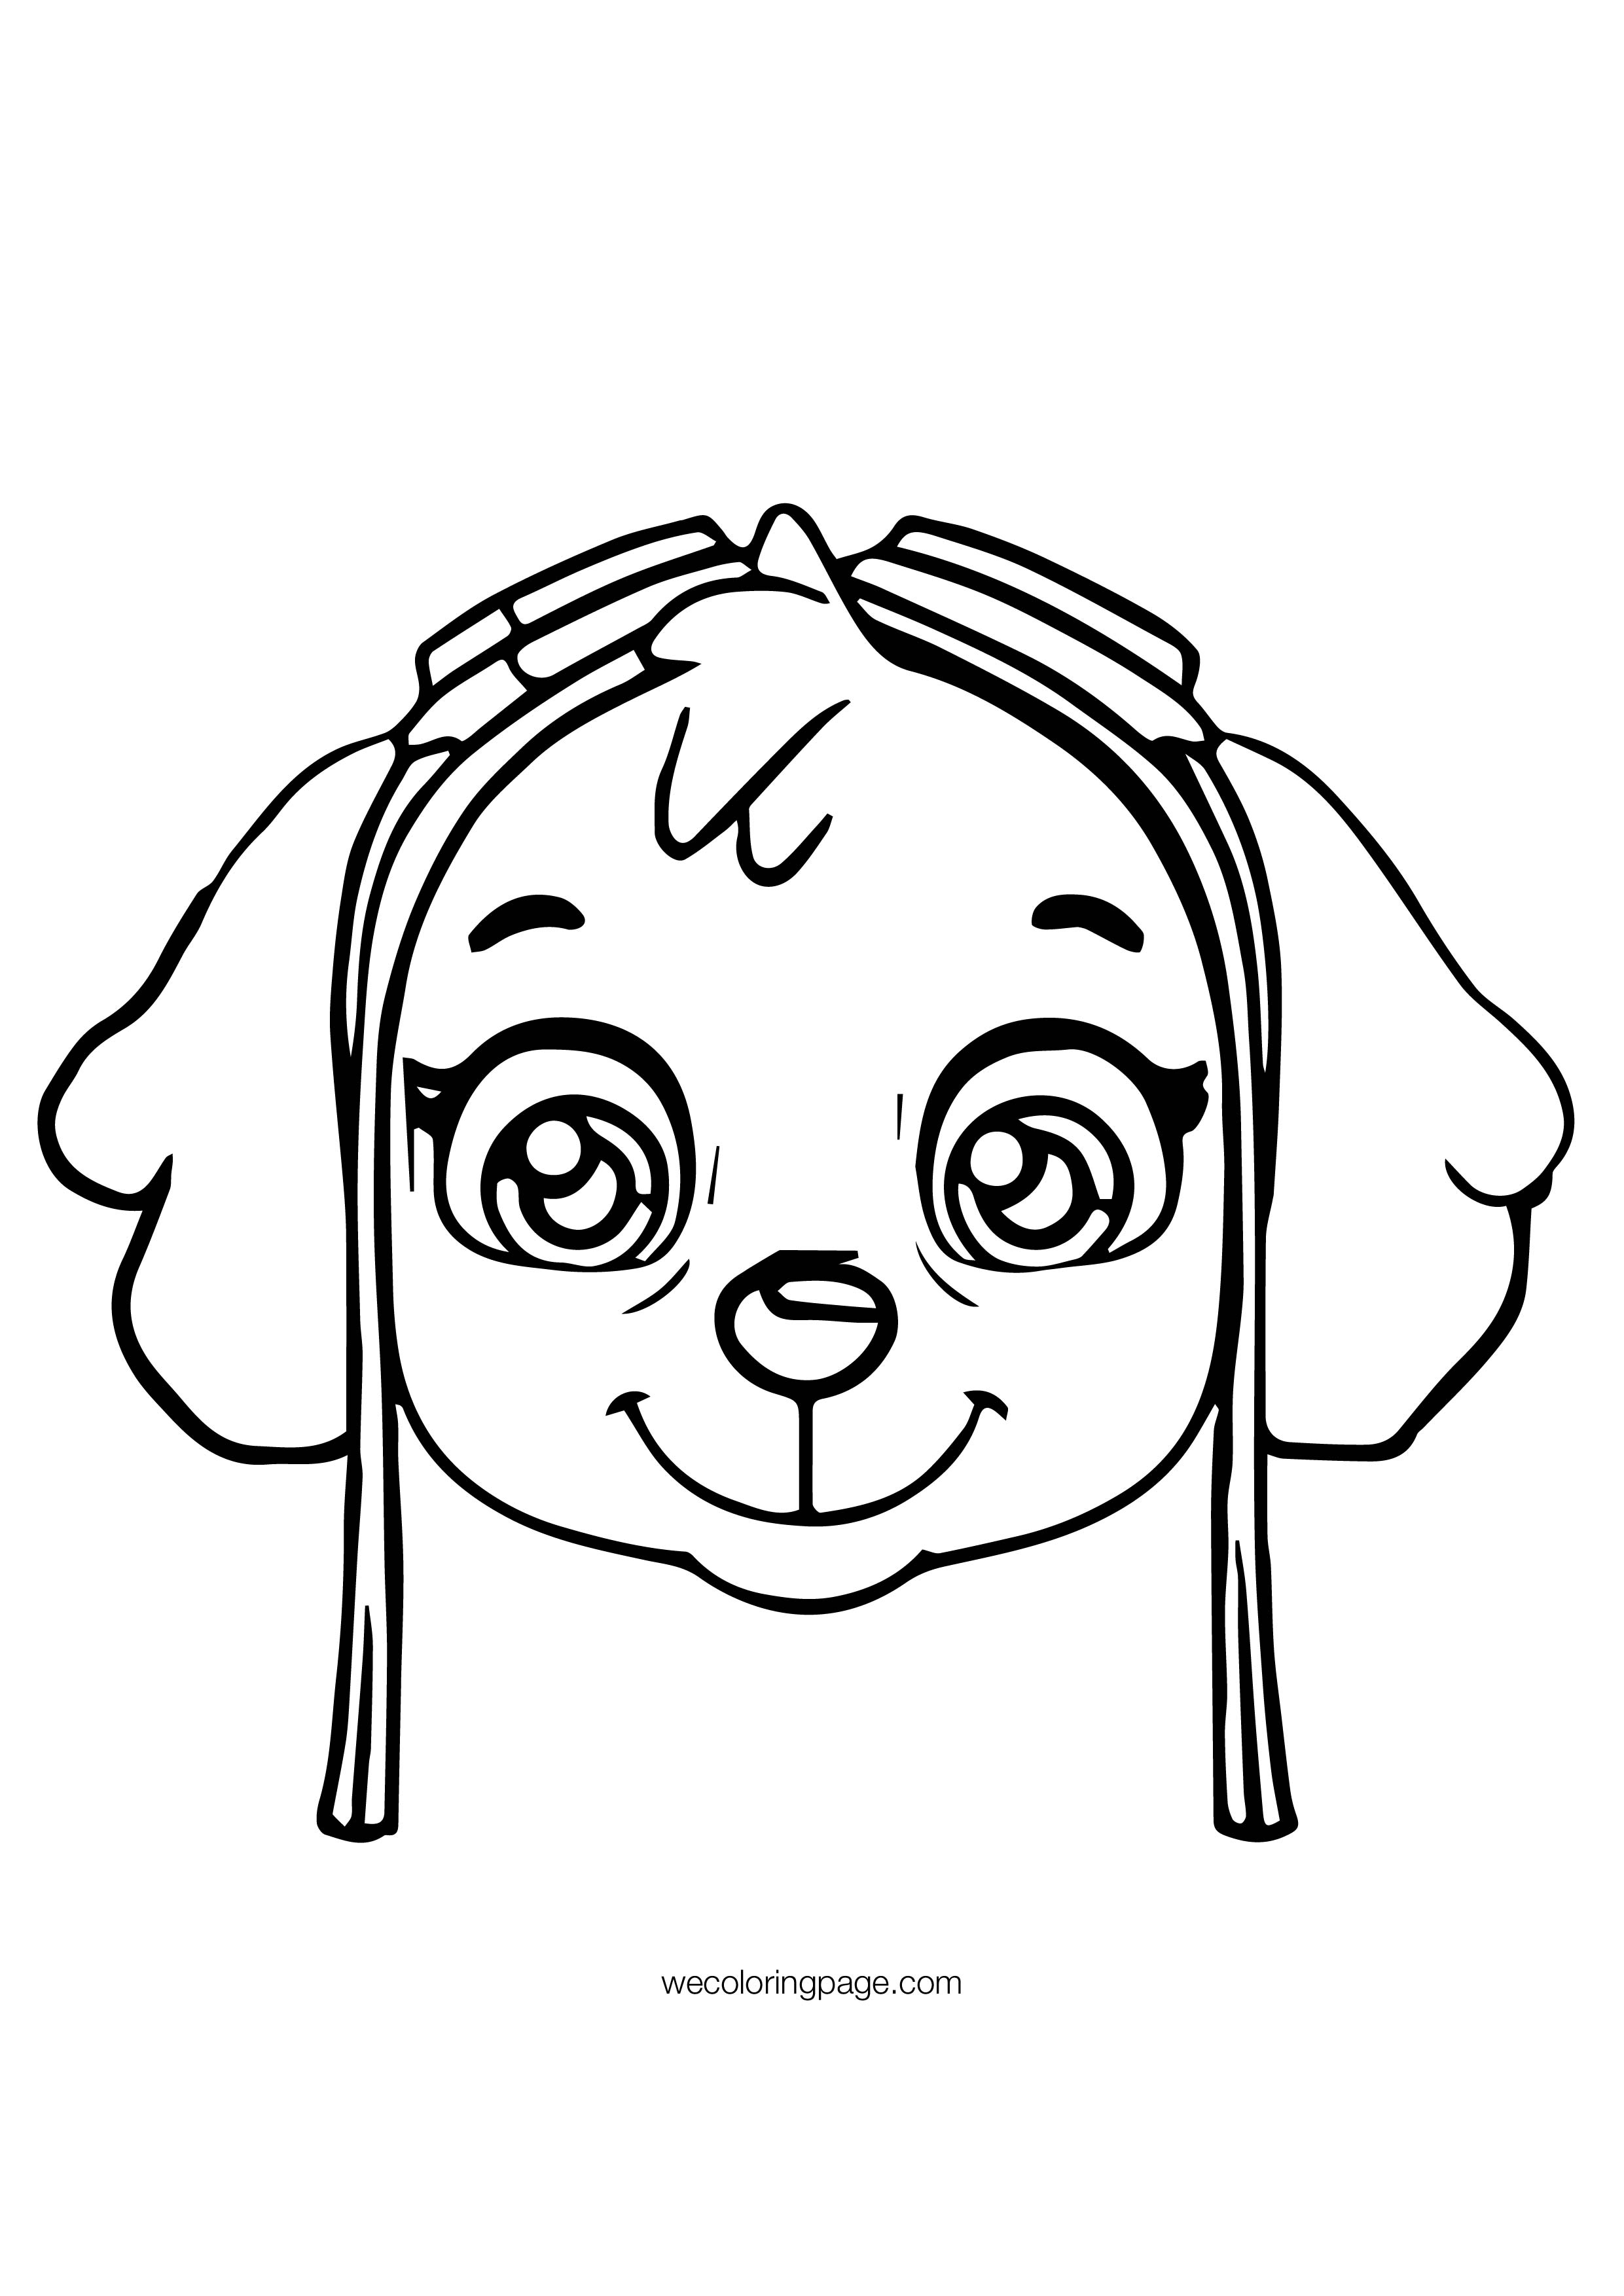 skye from paw patrol coloring pages   Paw Patrol Skye Face Patrol Coloring Page   Wecoloringpage.com